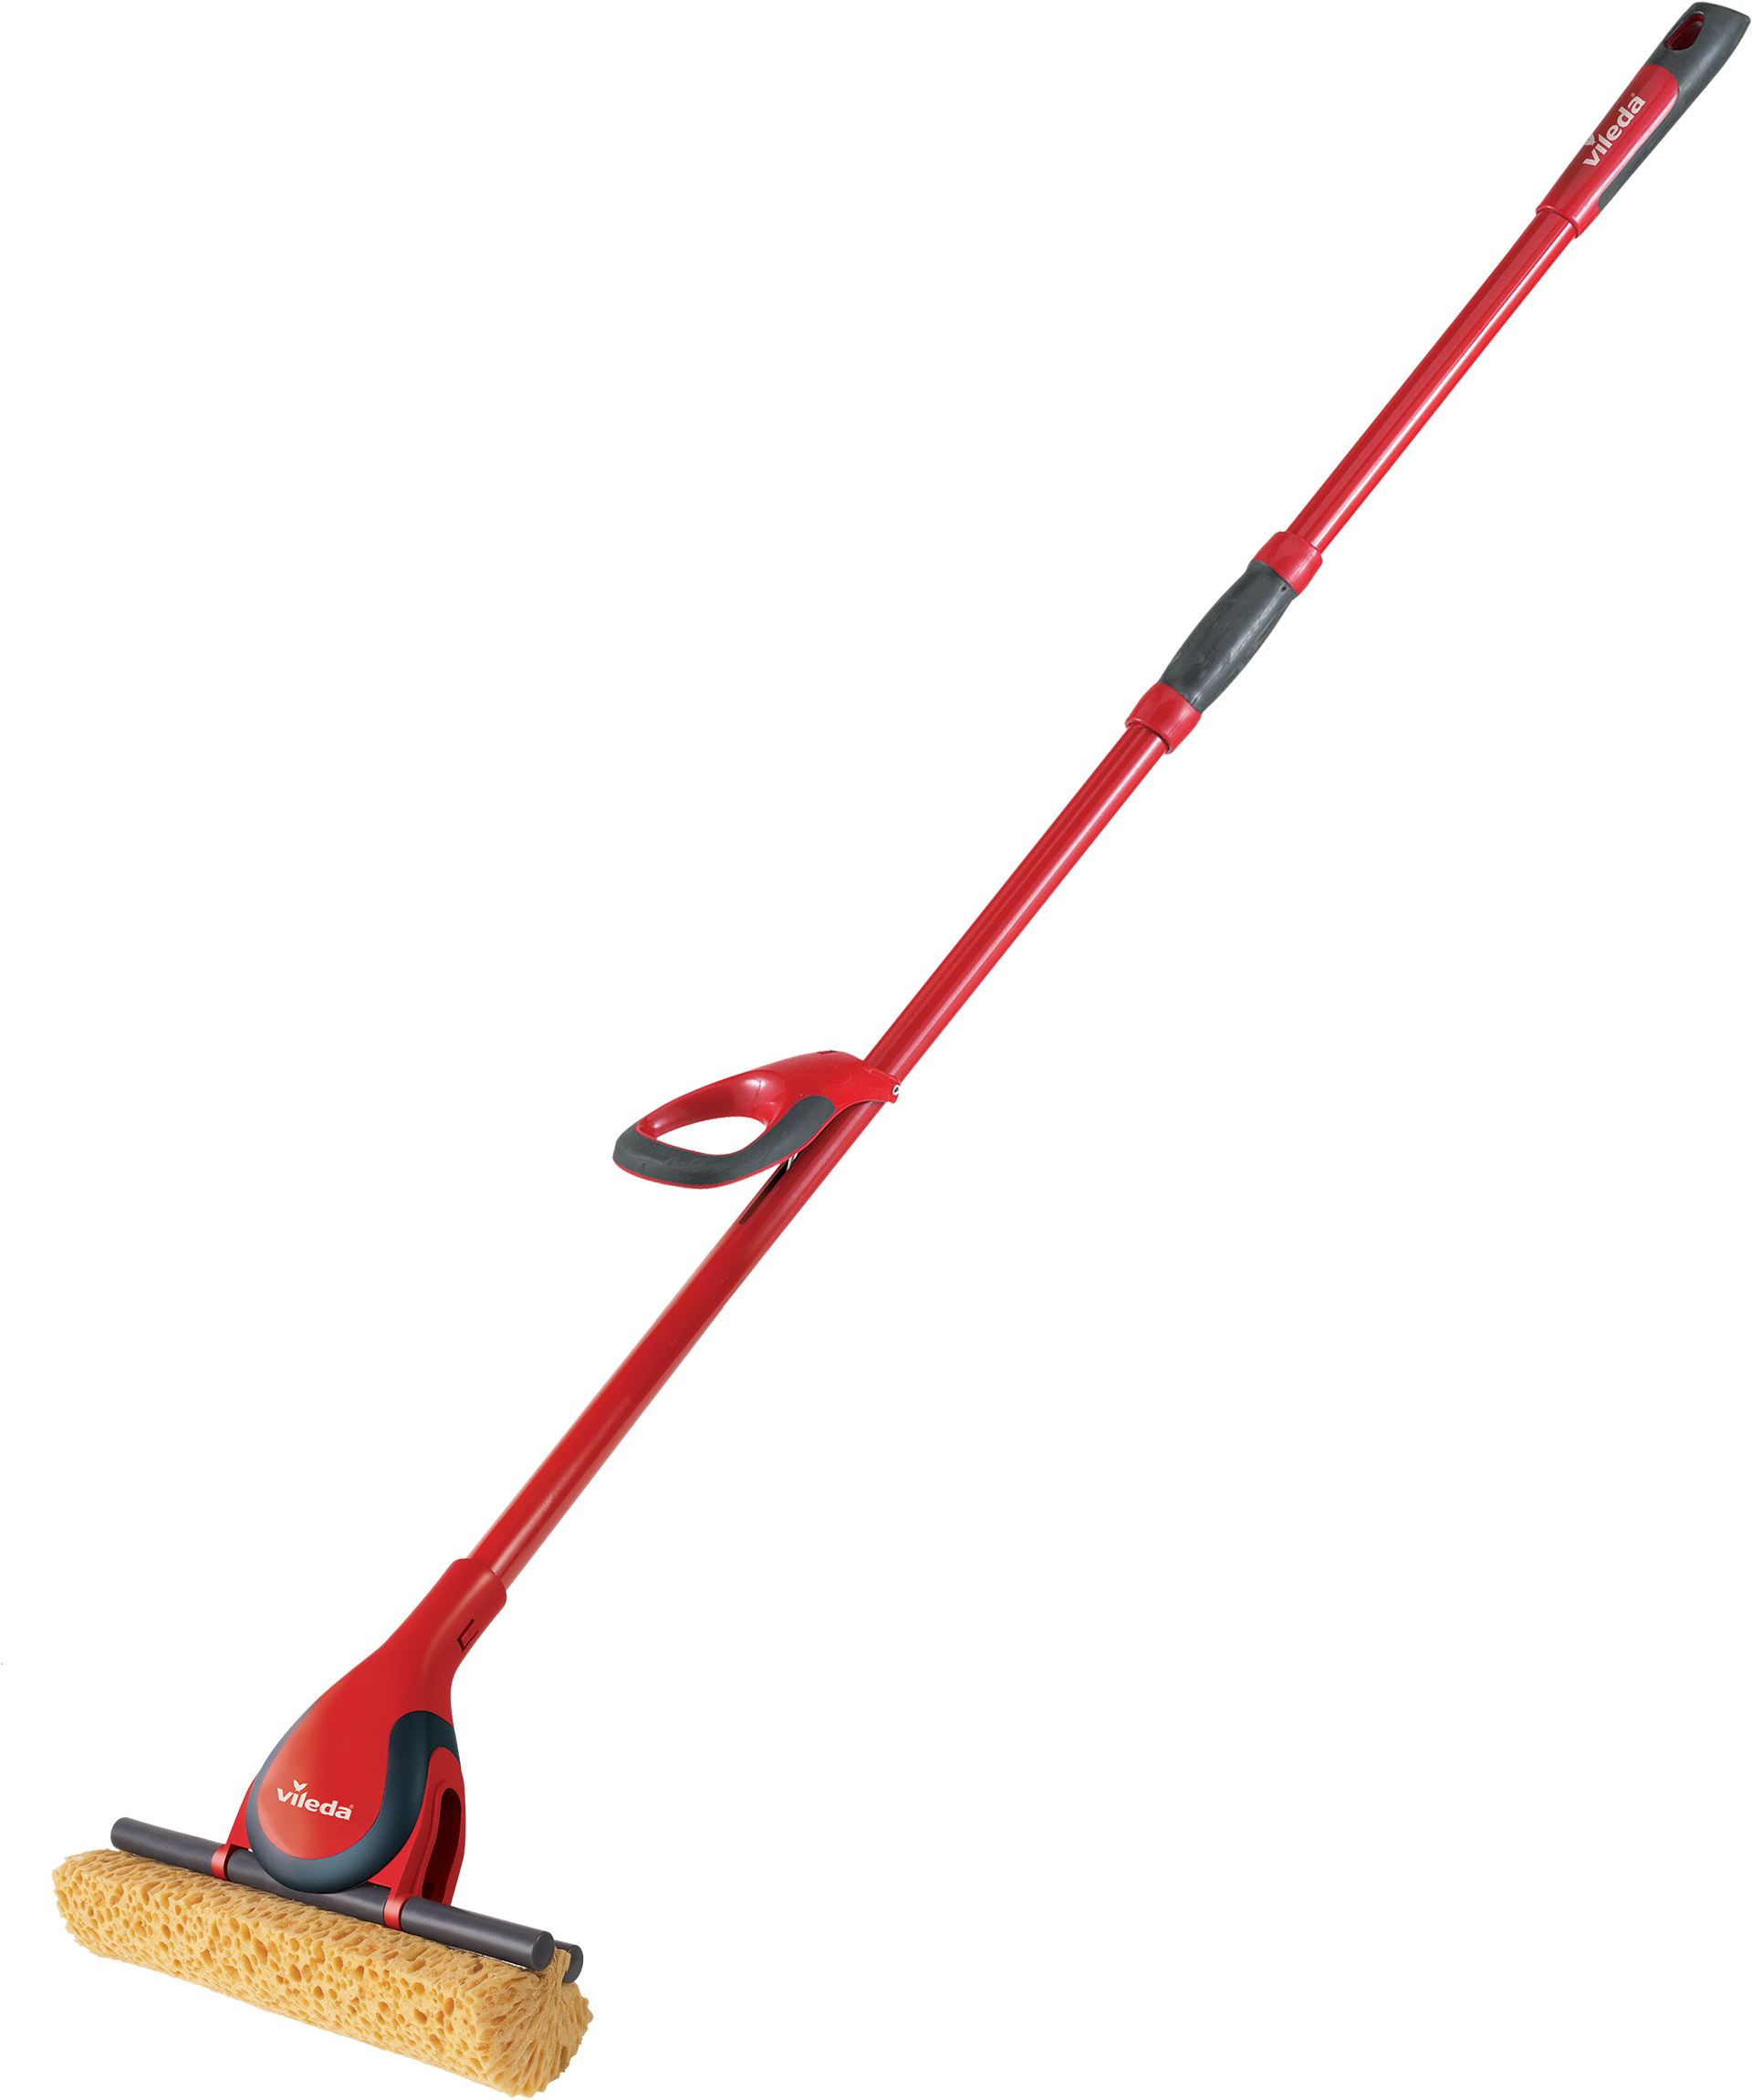 Vileda Bee Mop Classic - includes handle and head